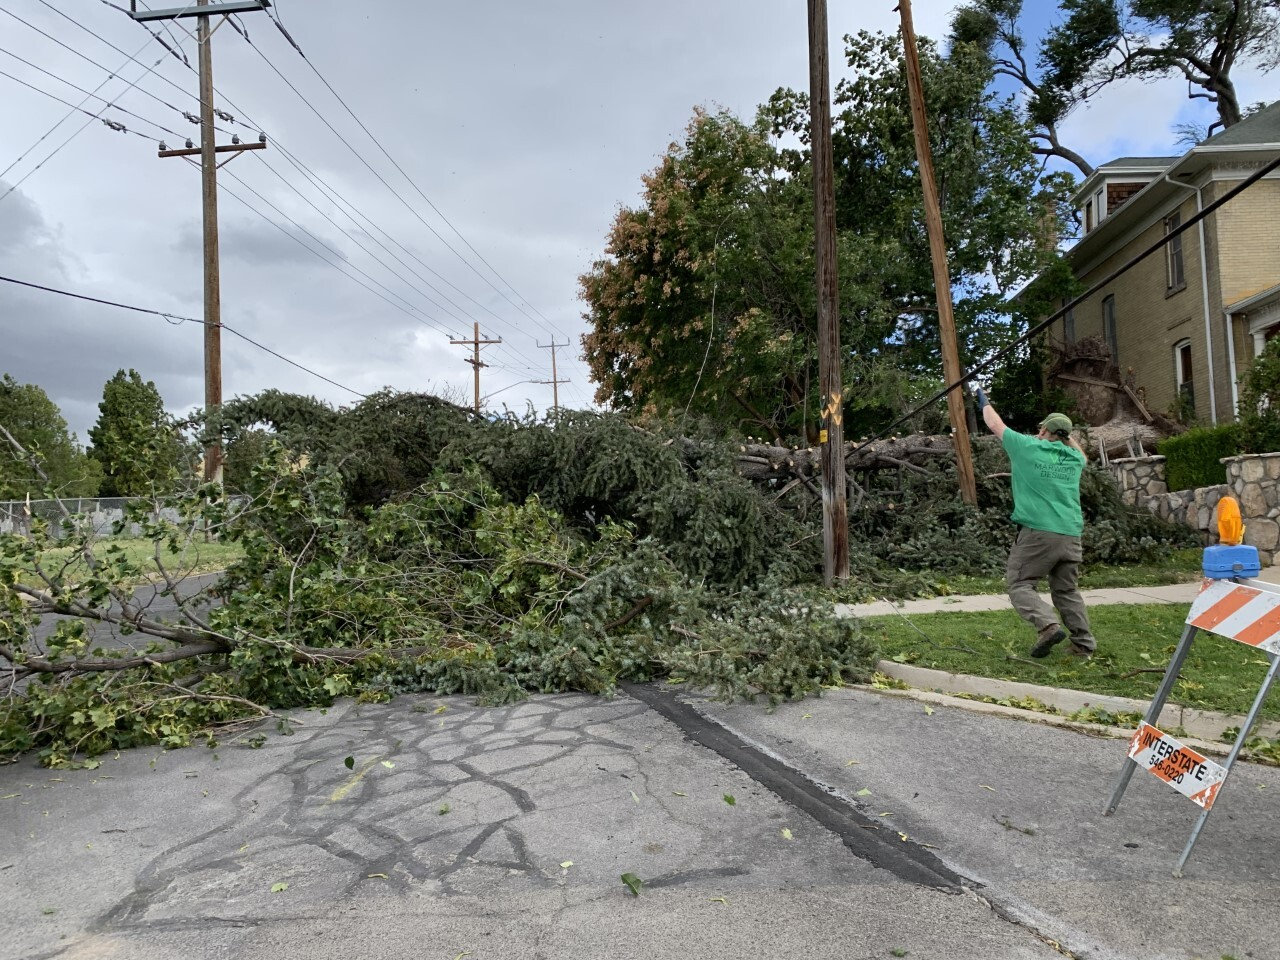 Damage in The Avenues